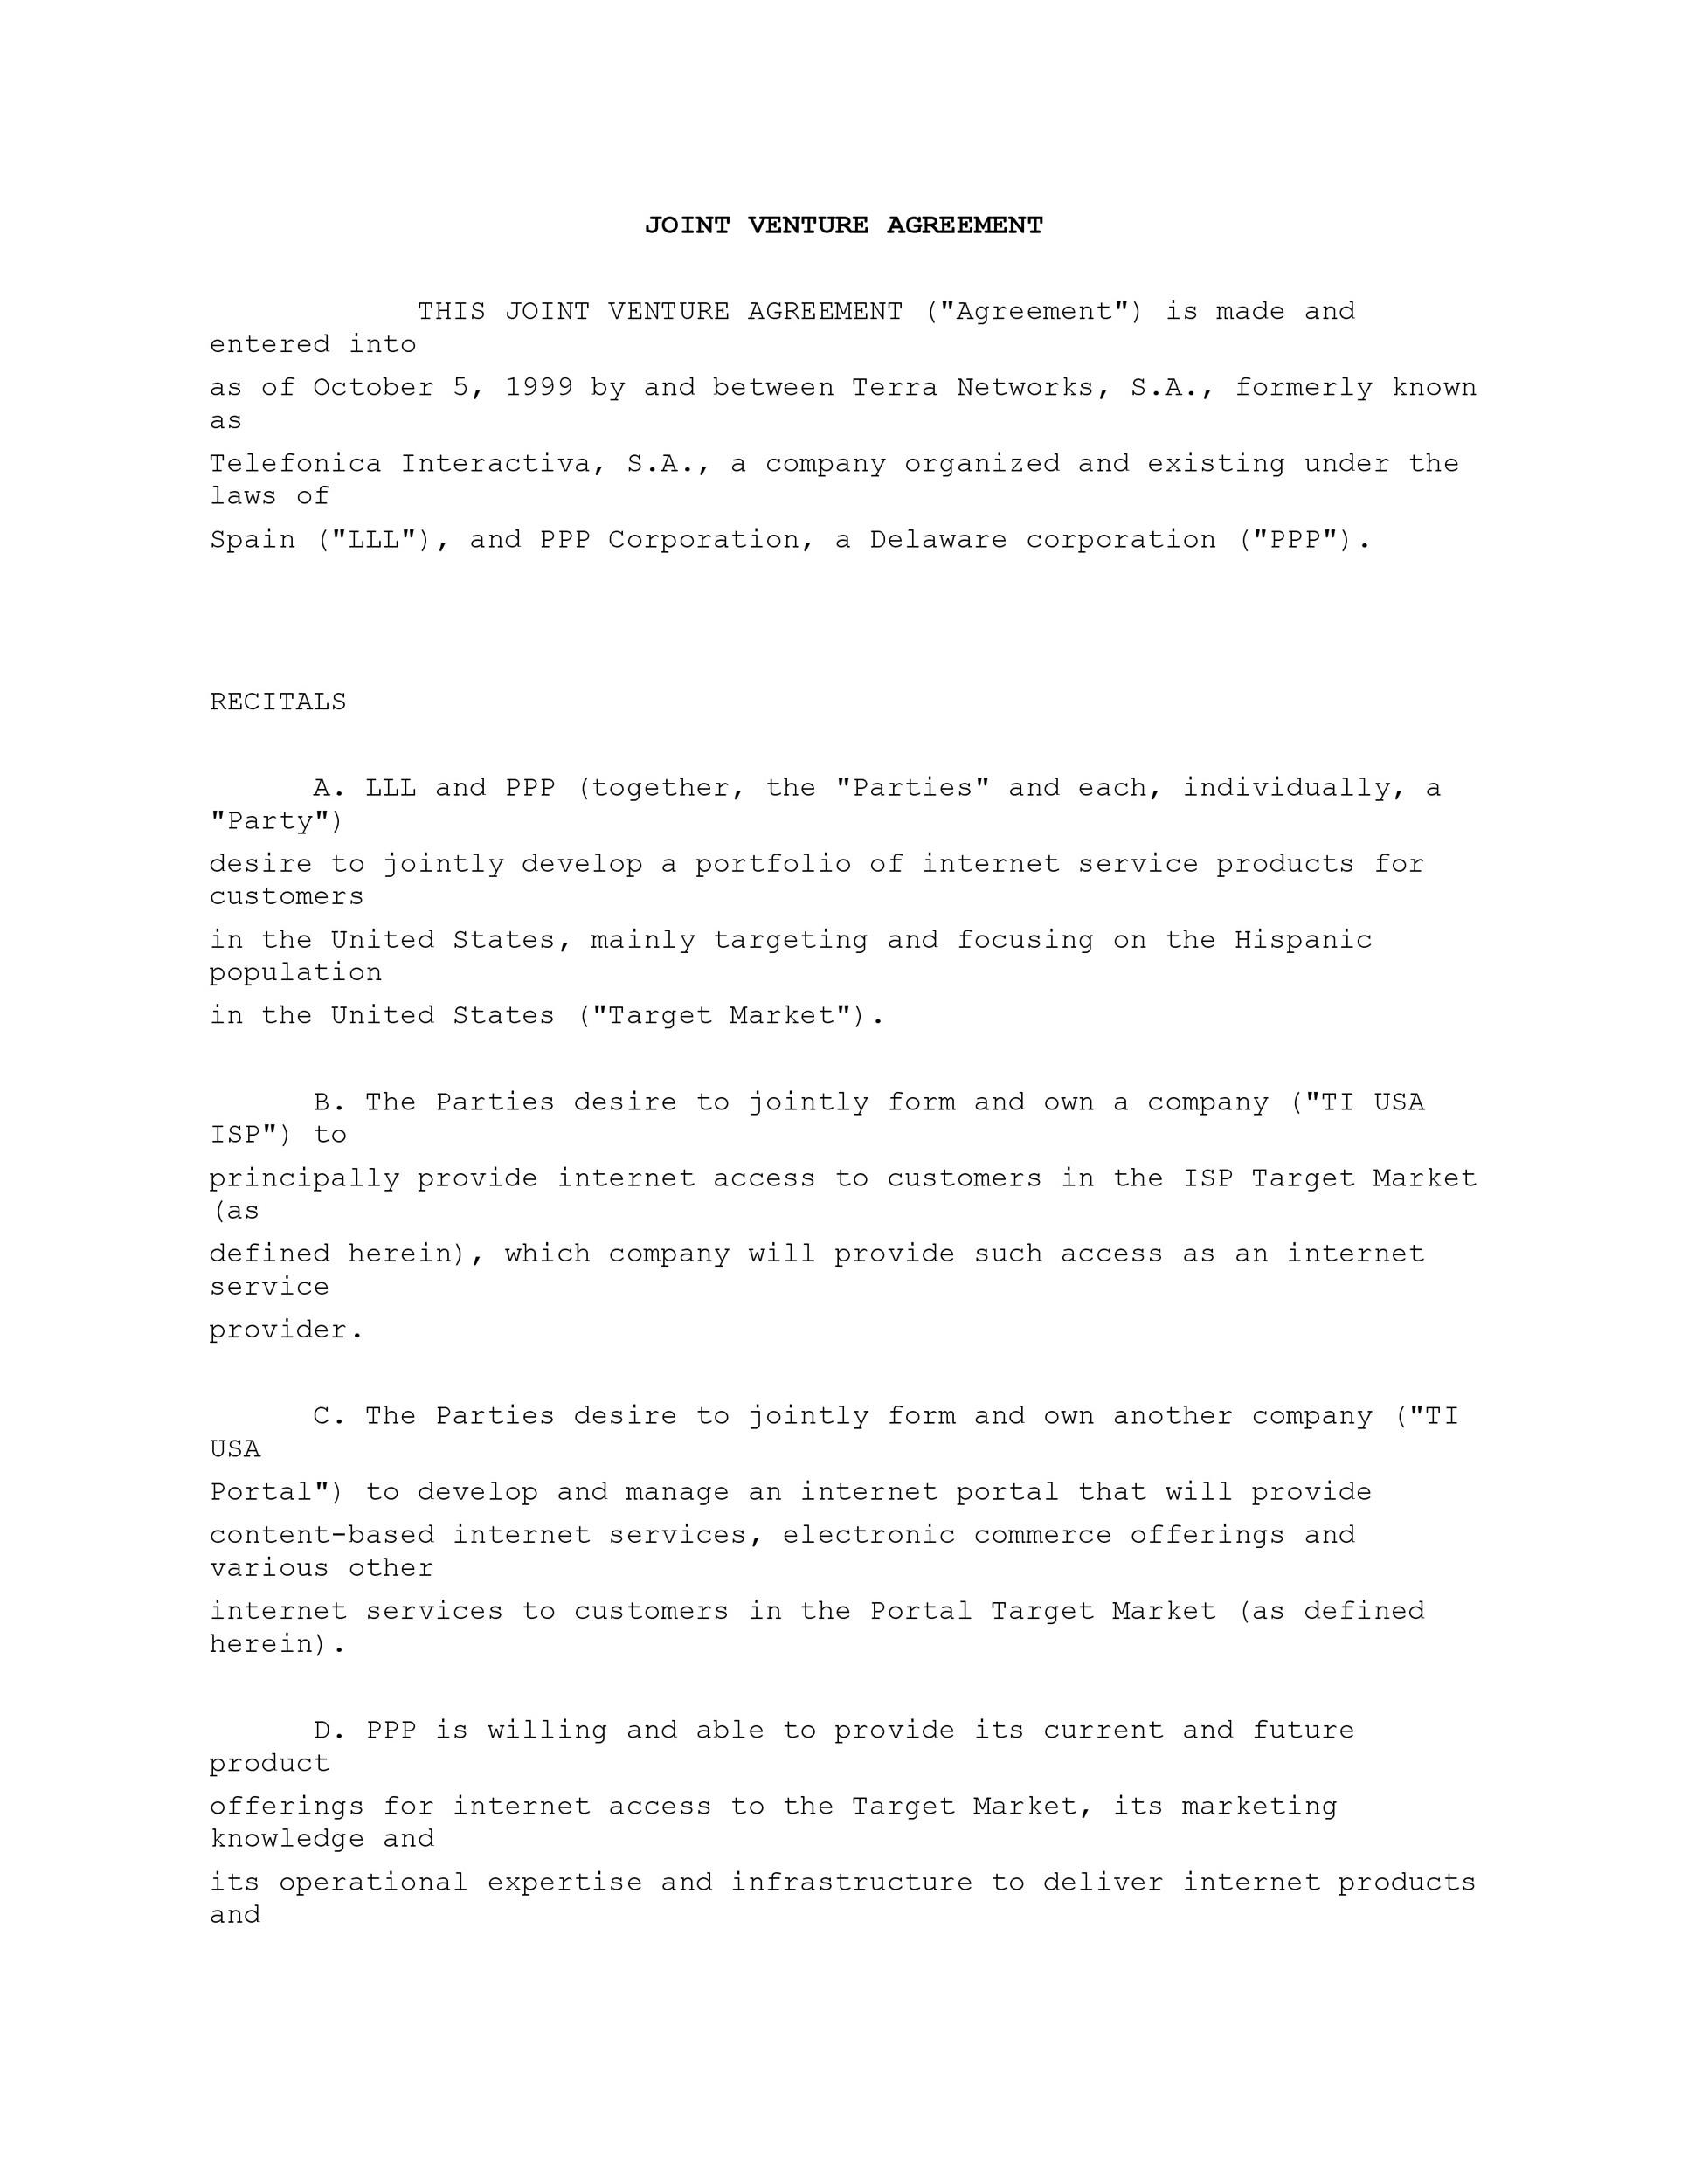 Free Joint Venture Agreement Template 31